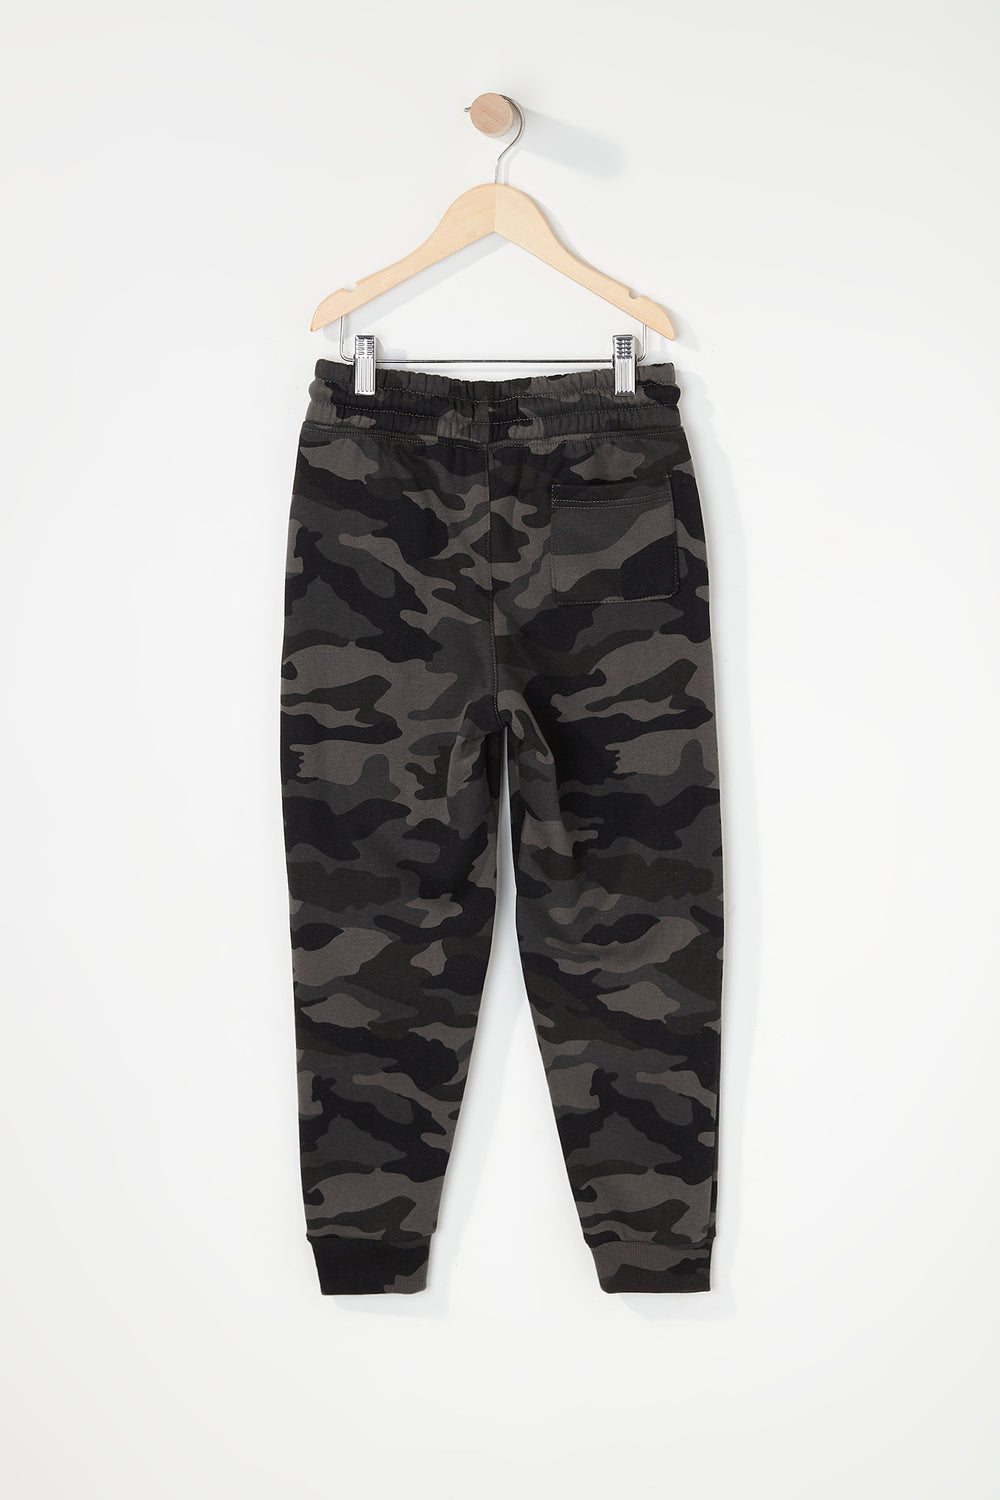 Boys Fleece Camo Classic Jogger Black with White